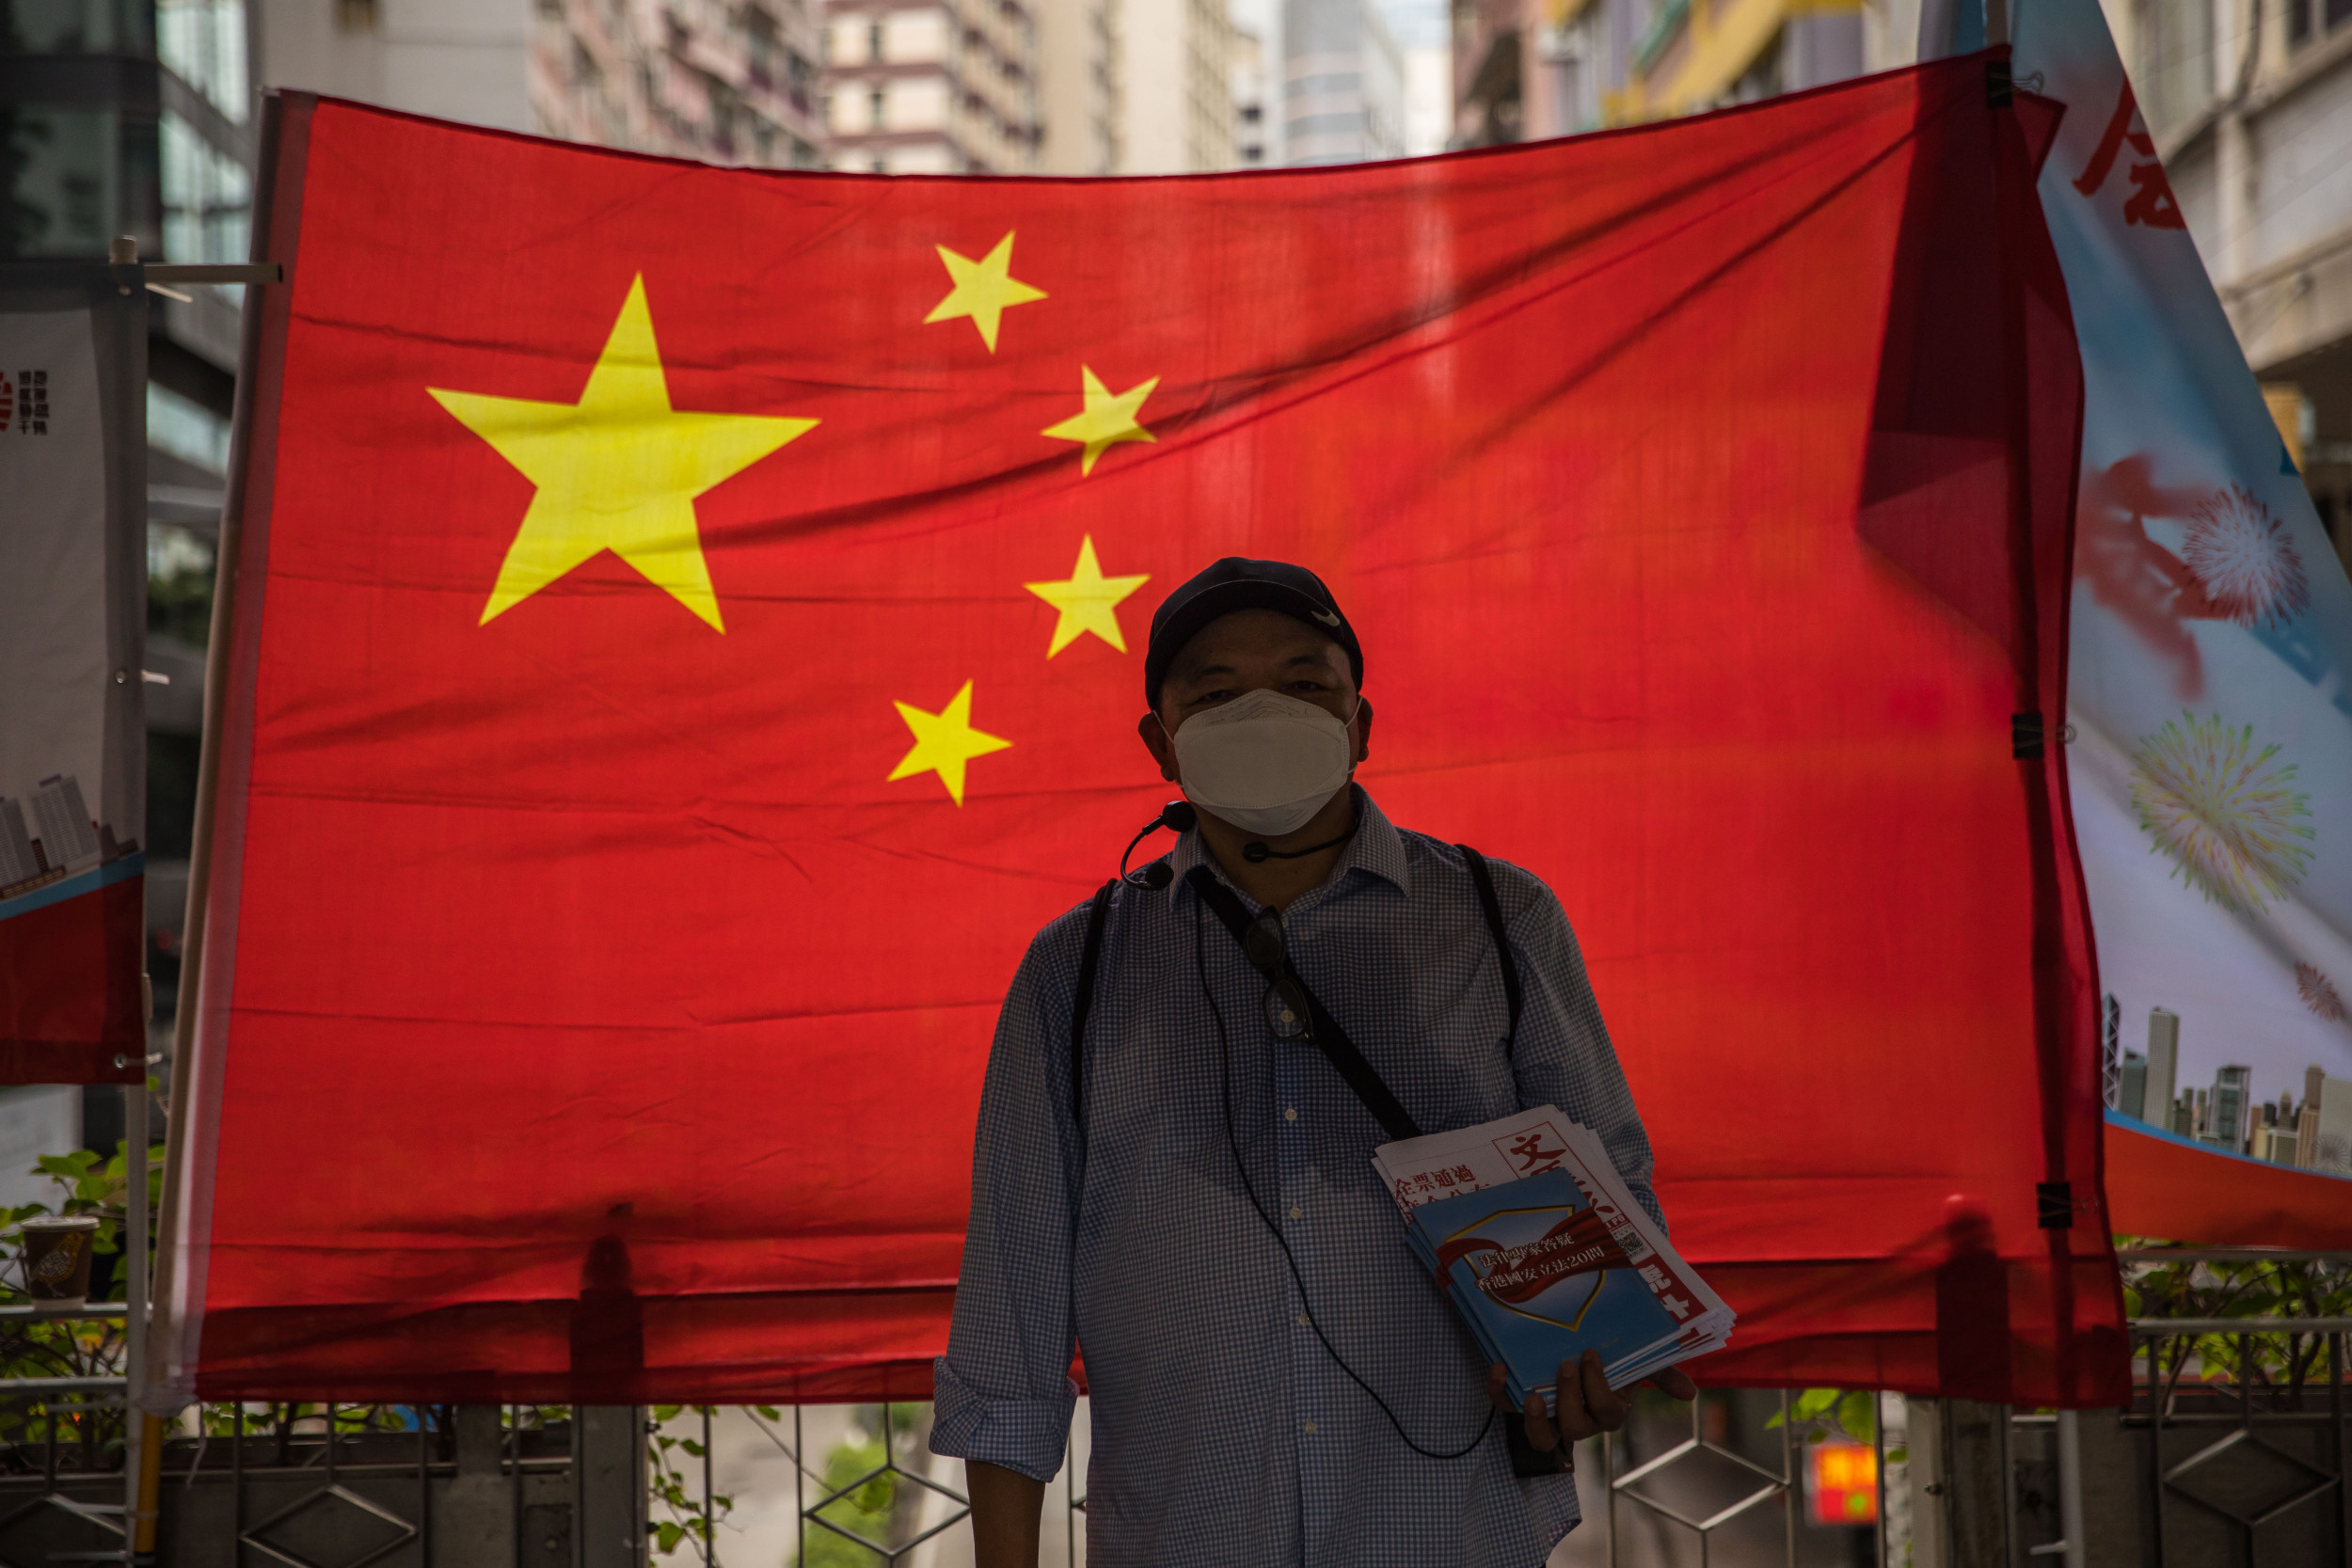 U.S. Orders China to Close Houston Consulate, Citing